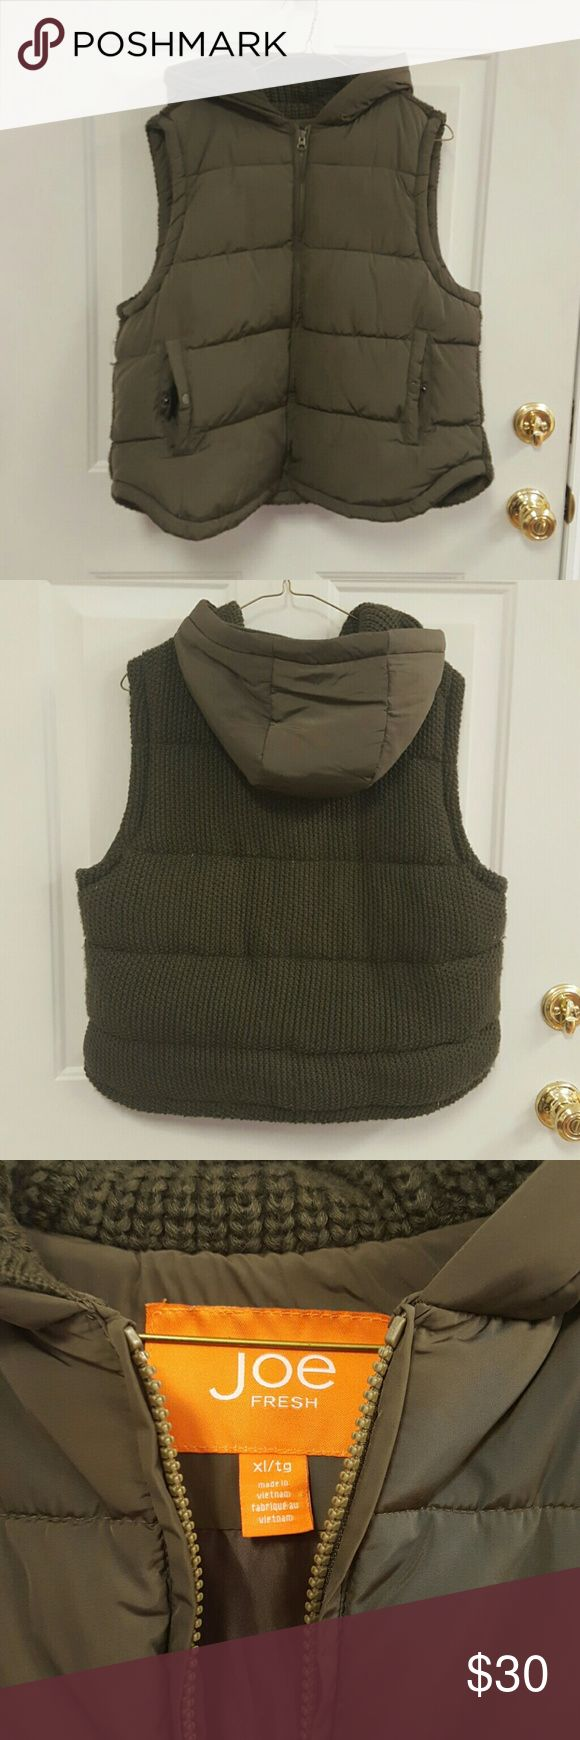 Joe Fresh army green puffer vest This Joe Fresh army green puffer vest has a hood and a knit back. It is super comfortable and warm. Gently worn Joe Fresh Jackets & Coats Vests